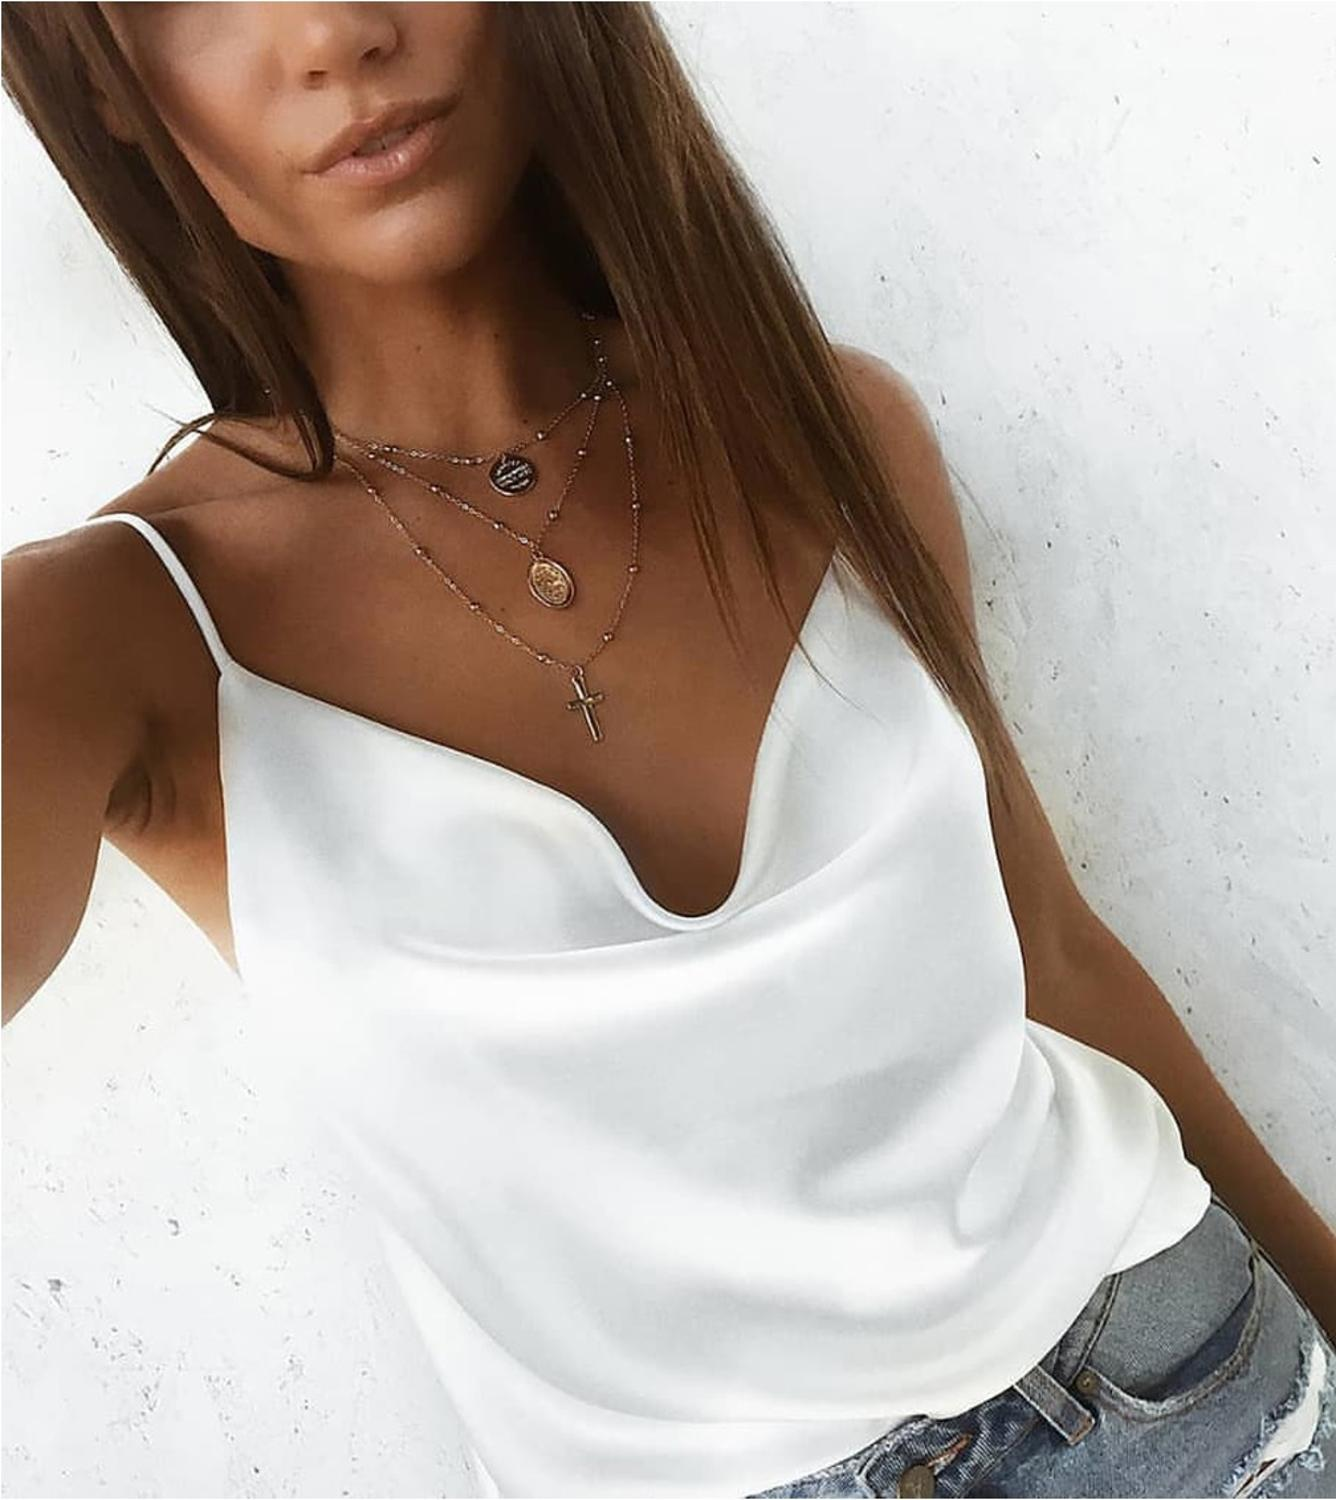 Fashion New Women Girl Silk Satin Camis Plain Sleeveless Strappy Camisole Vest Tank Top Tee Summer Costume Casual Ladies Clothes in T Shirts from Women 39 s Clothing